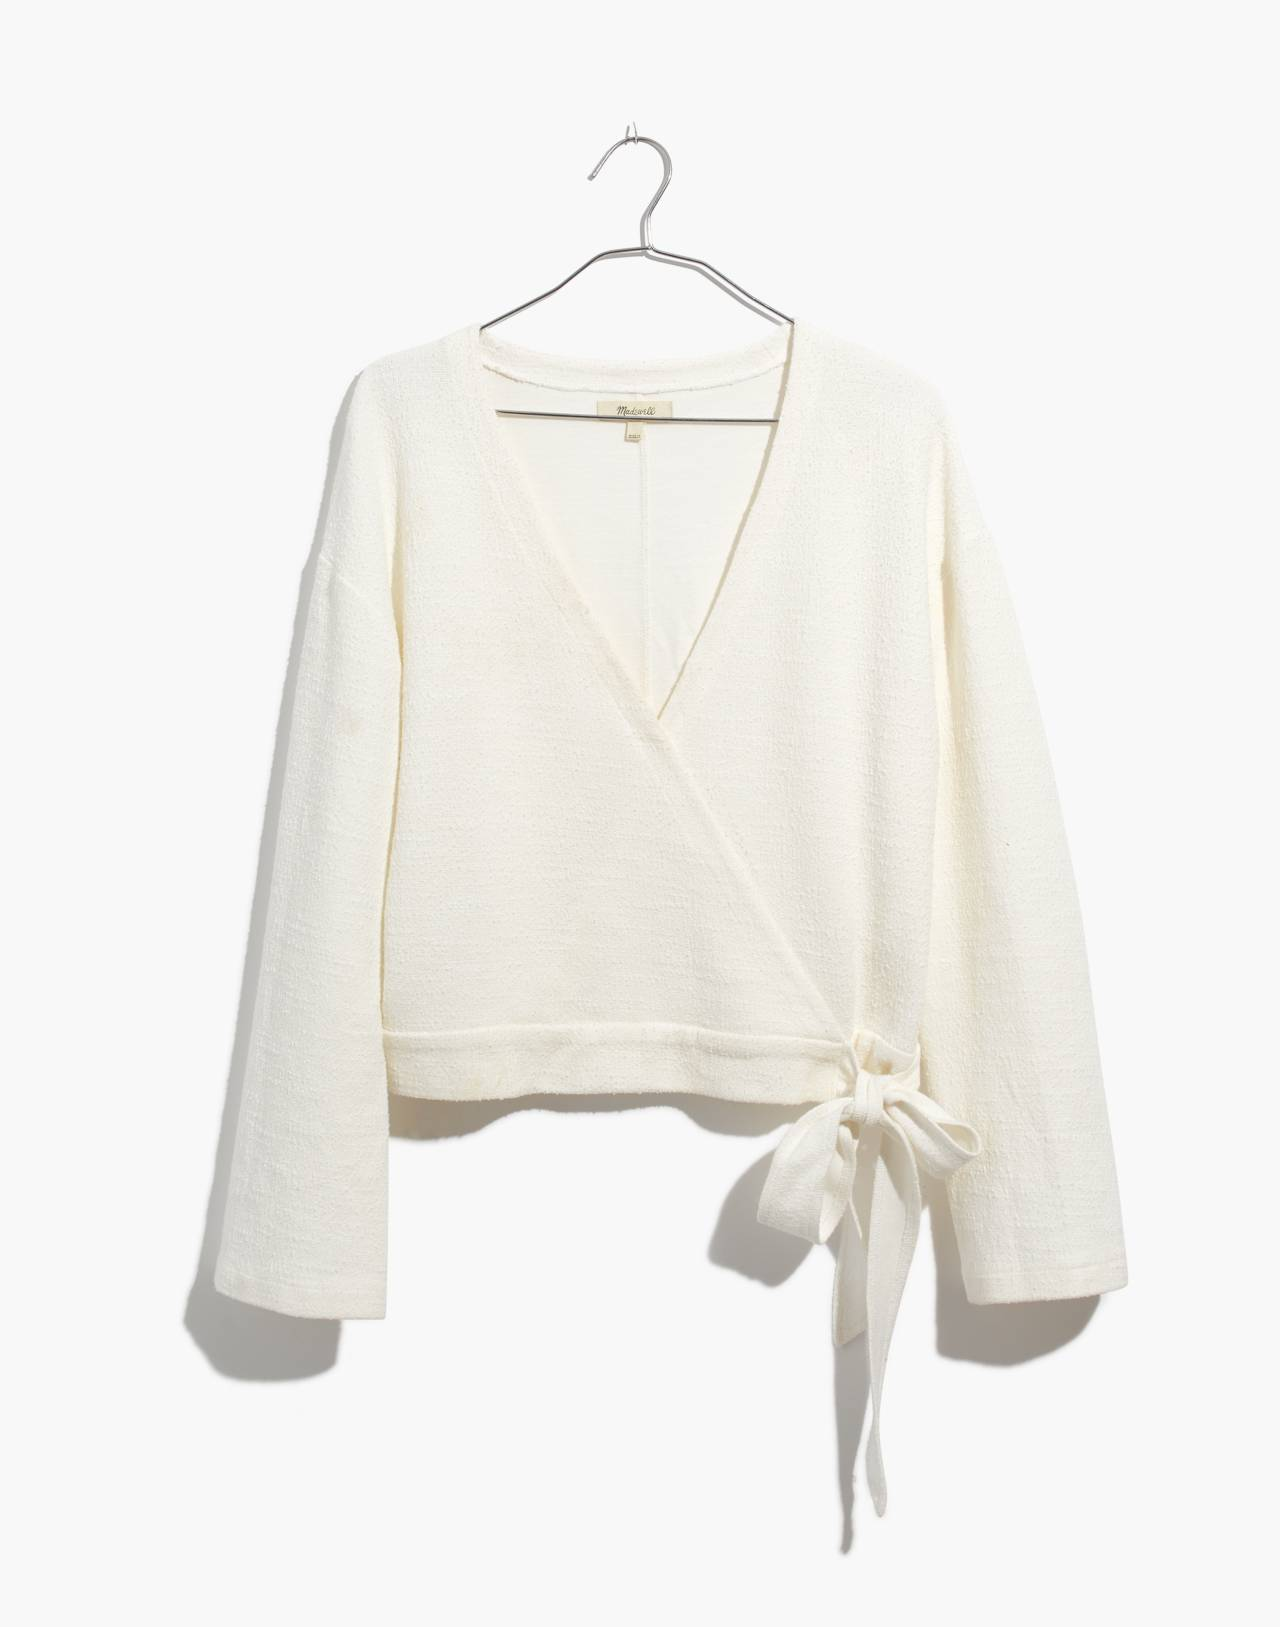 Texture & Thread Wrap Top in bright ivory image 4